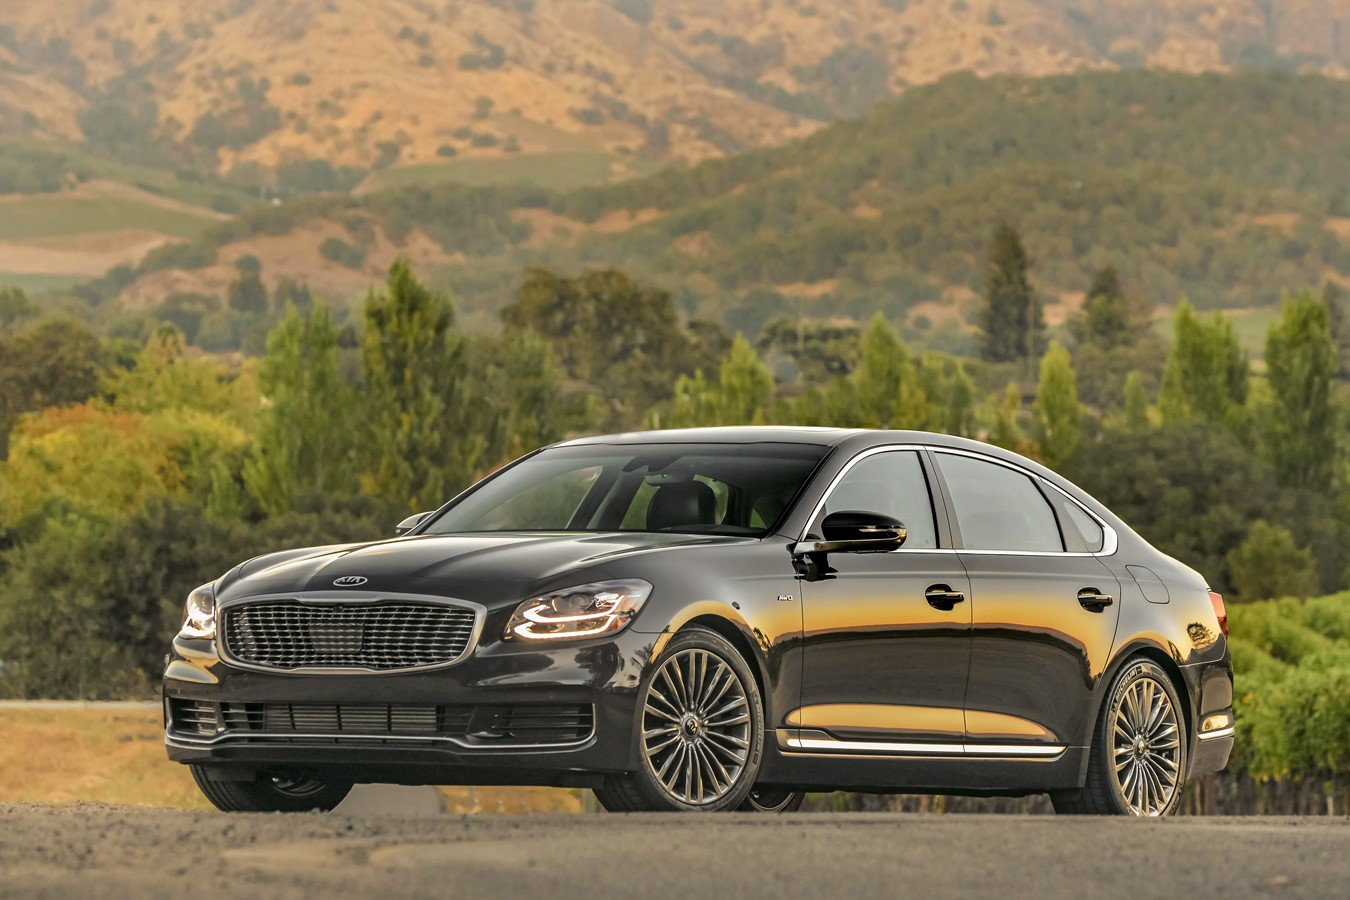 All New 2019 Kia K900 Preview: ALL-NEW 2019 K900 MARKS NEW PINNACLE OF LUXURY, TECHNOLOGY